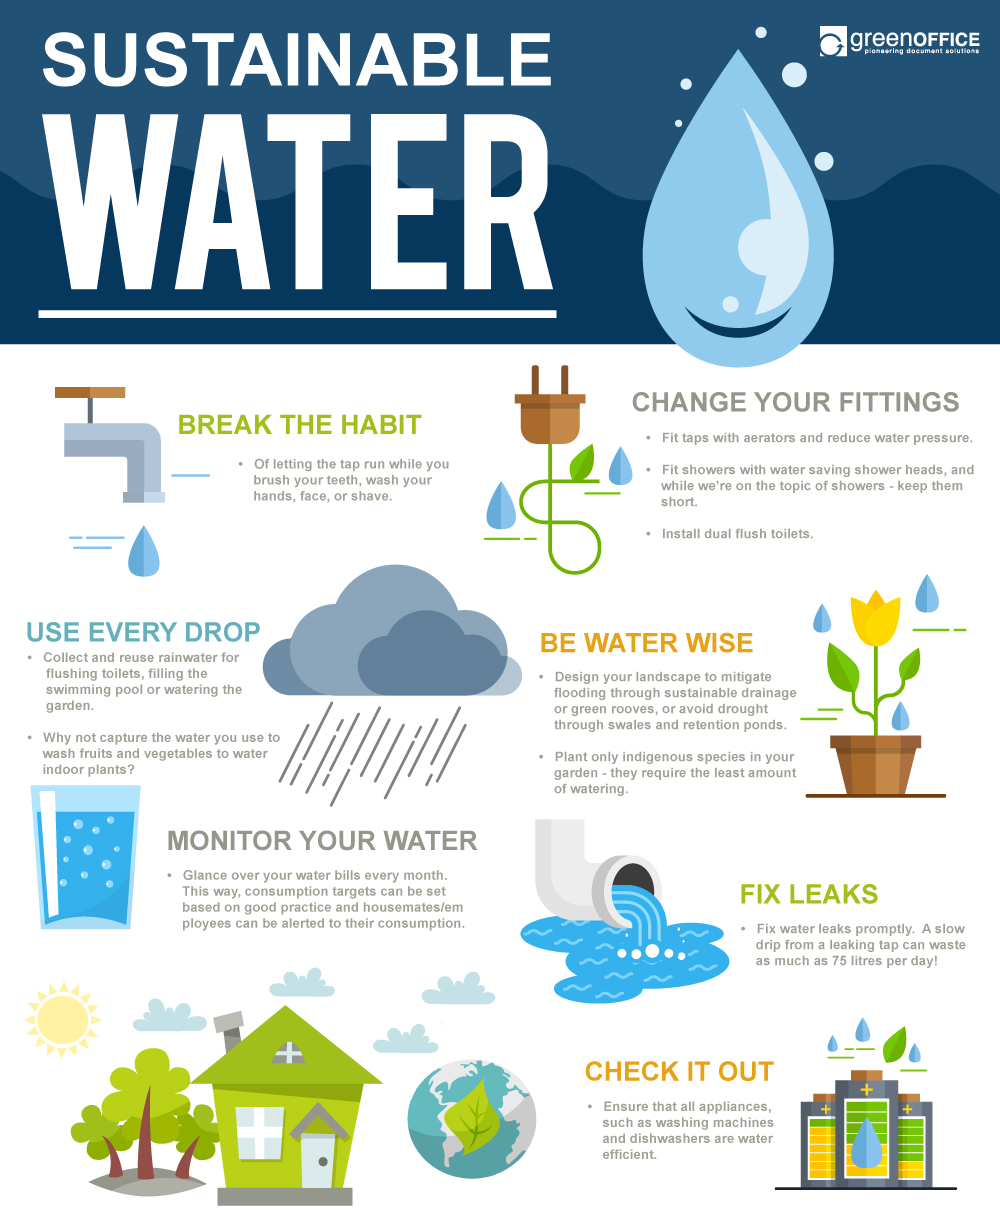 One_Planet_Living_Sustainable_Water